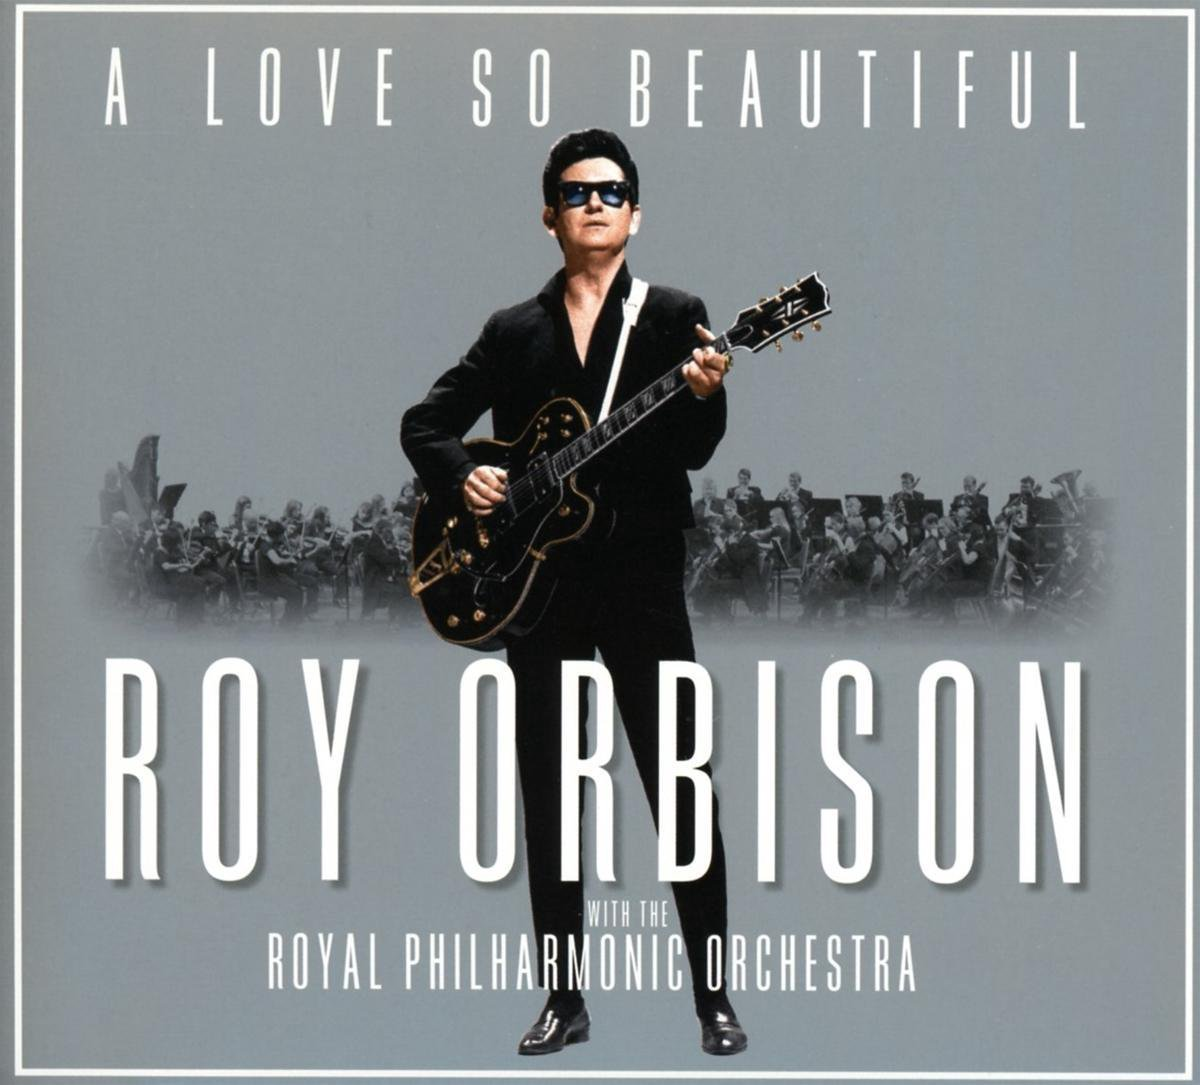 A Love So Beautiful: Roy Orbison With The Royal Philharmonic Orchestra (Digipack) - Roy Orbison